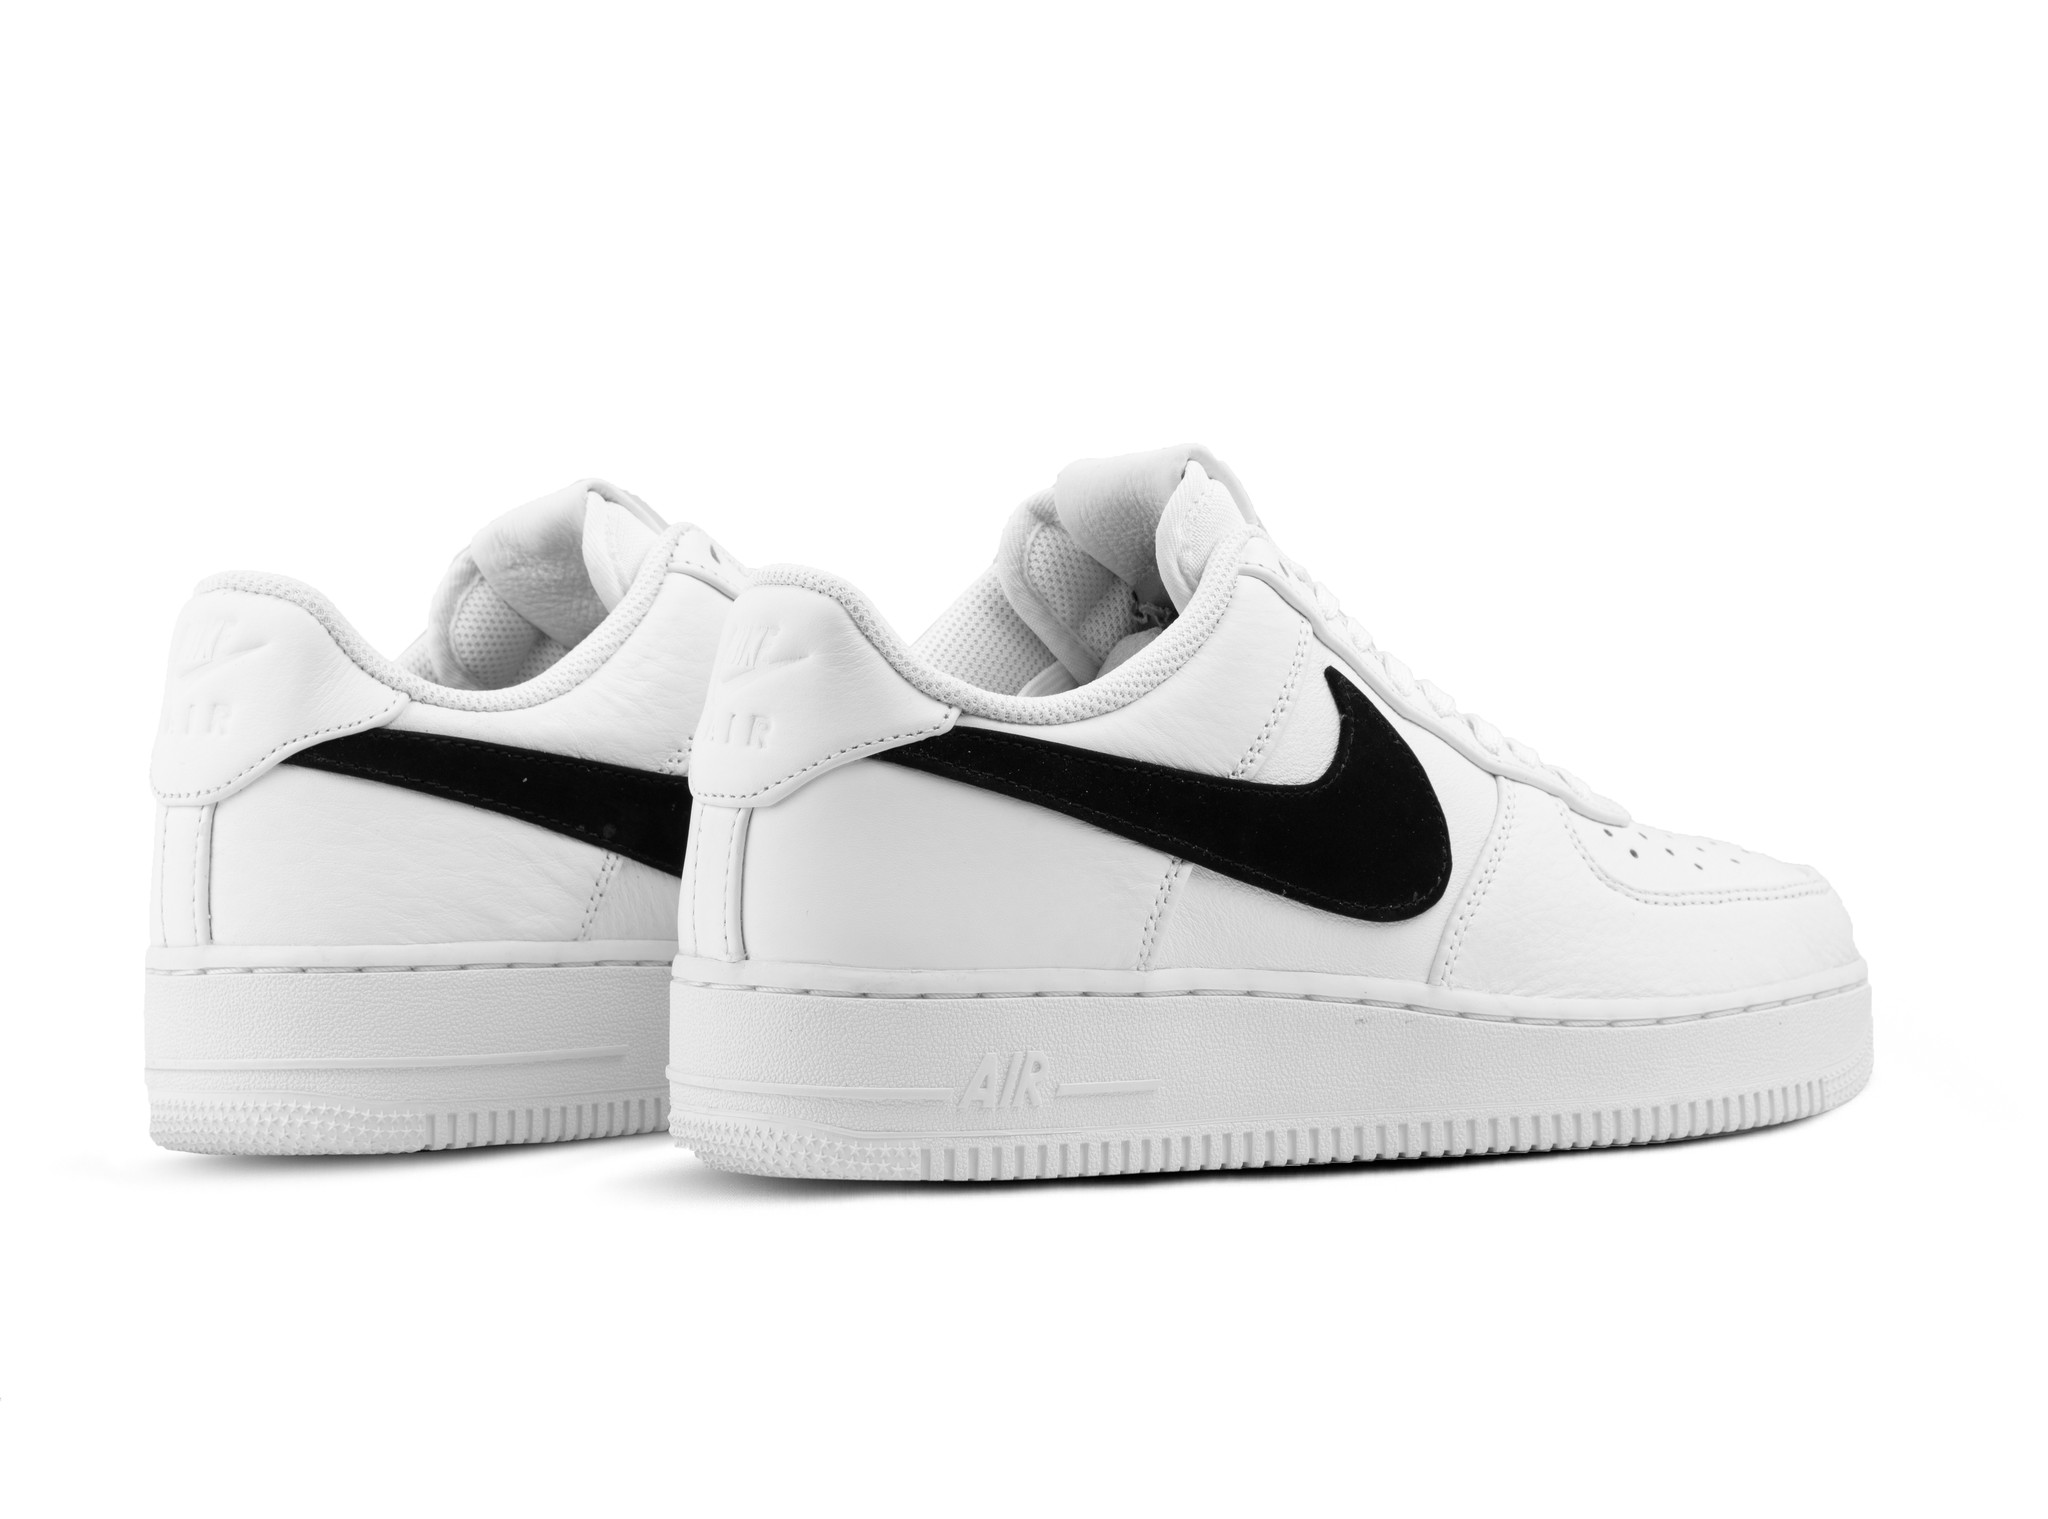 Nike Air Force 1 '07 PRM 2 White Black AT4143 102 | Bruut